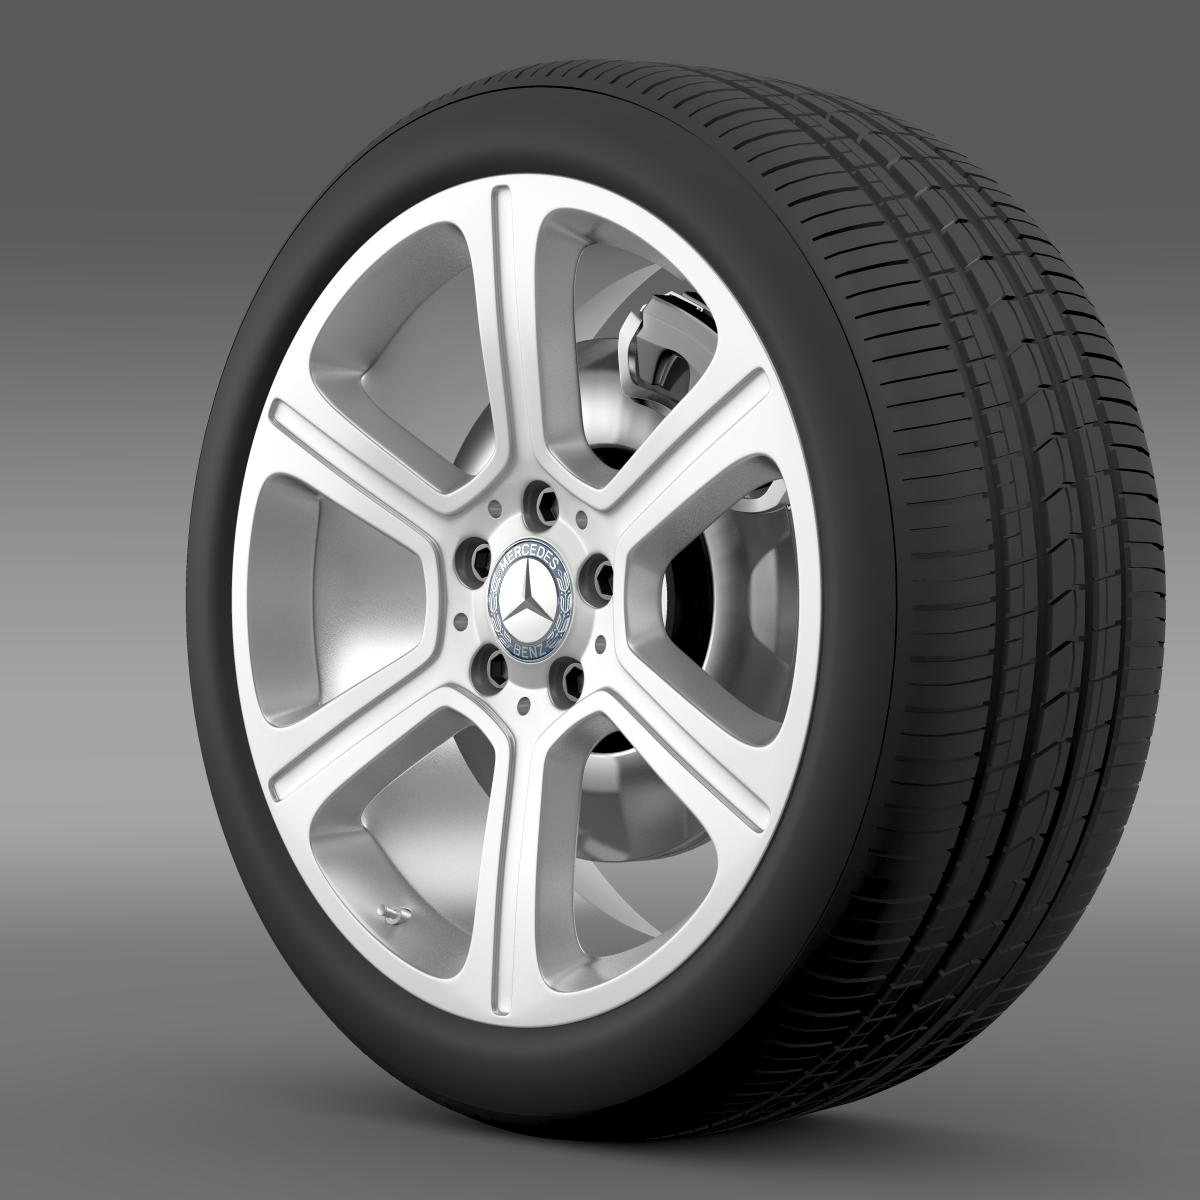 mercedes benz c 300 exclusive line wheel 3d model 3ds max fbx c4d lwo ma mb hrc xsi obj 210770